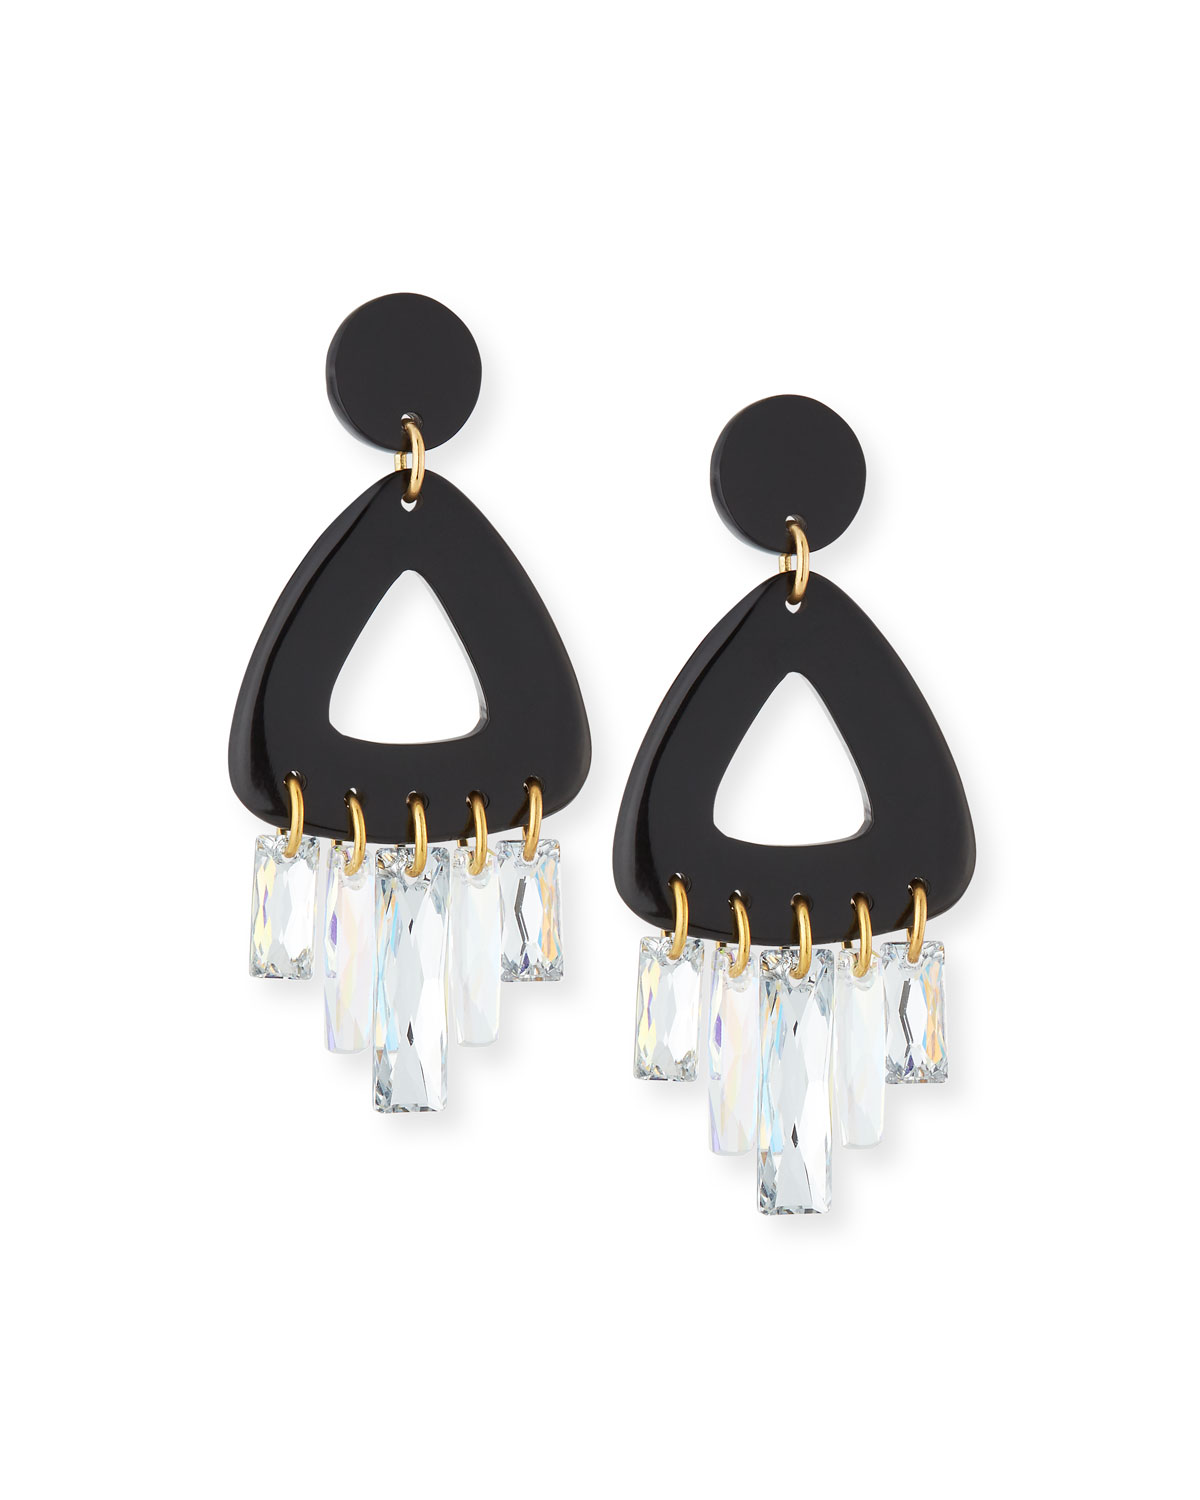 NEST JEWELRY CRYSTAL DROP STATEMENT EARRINGS